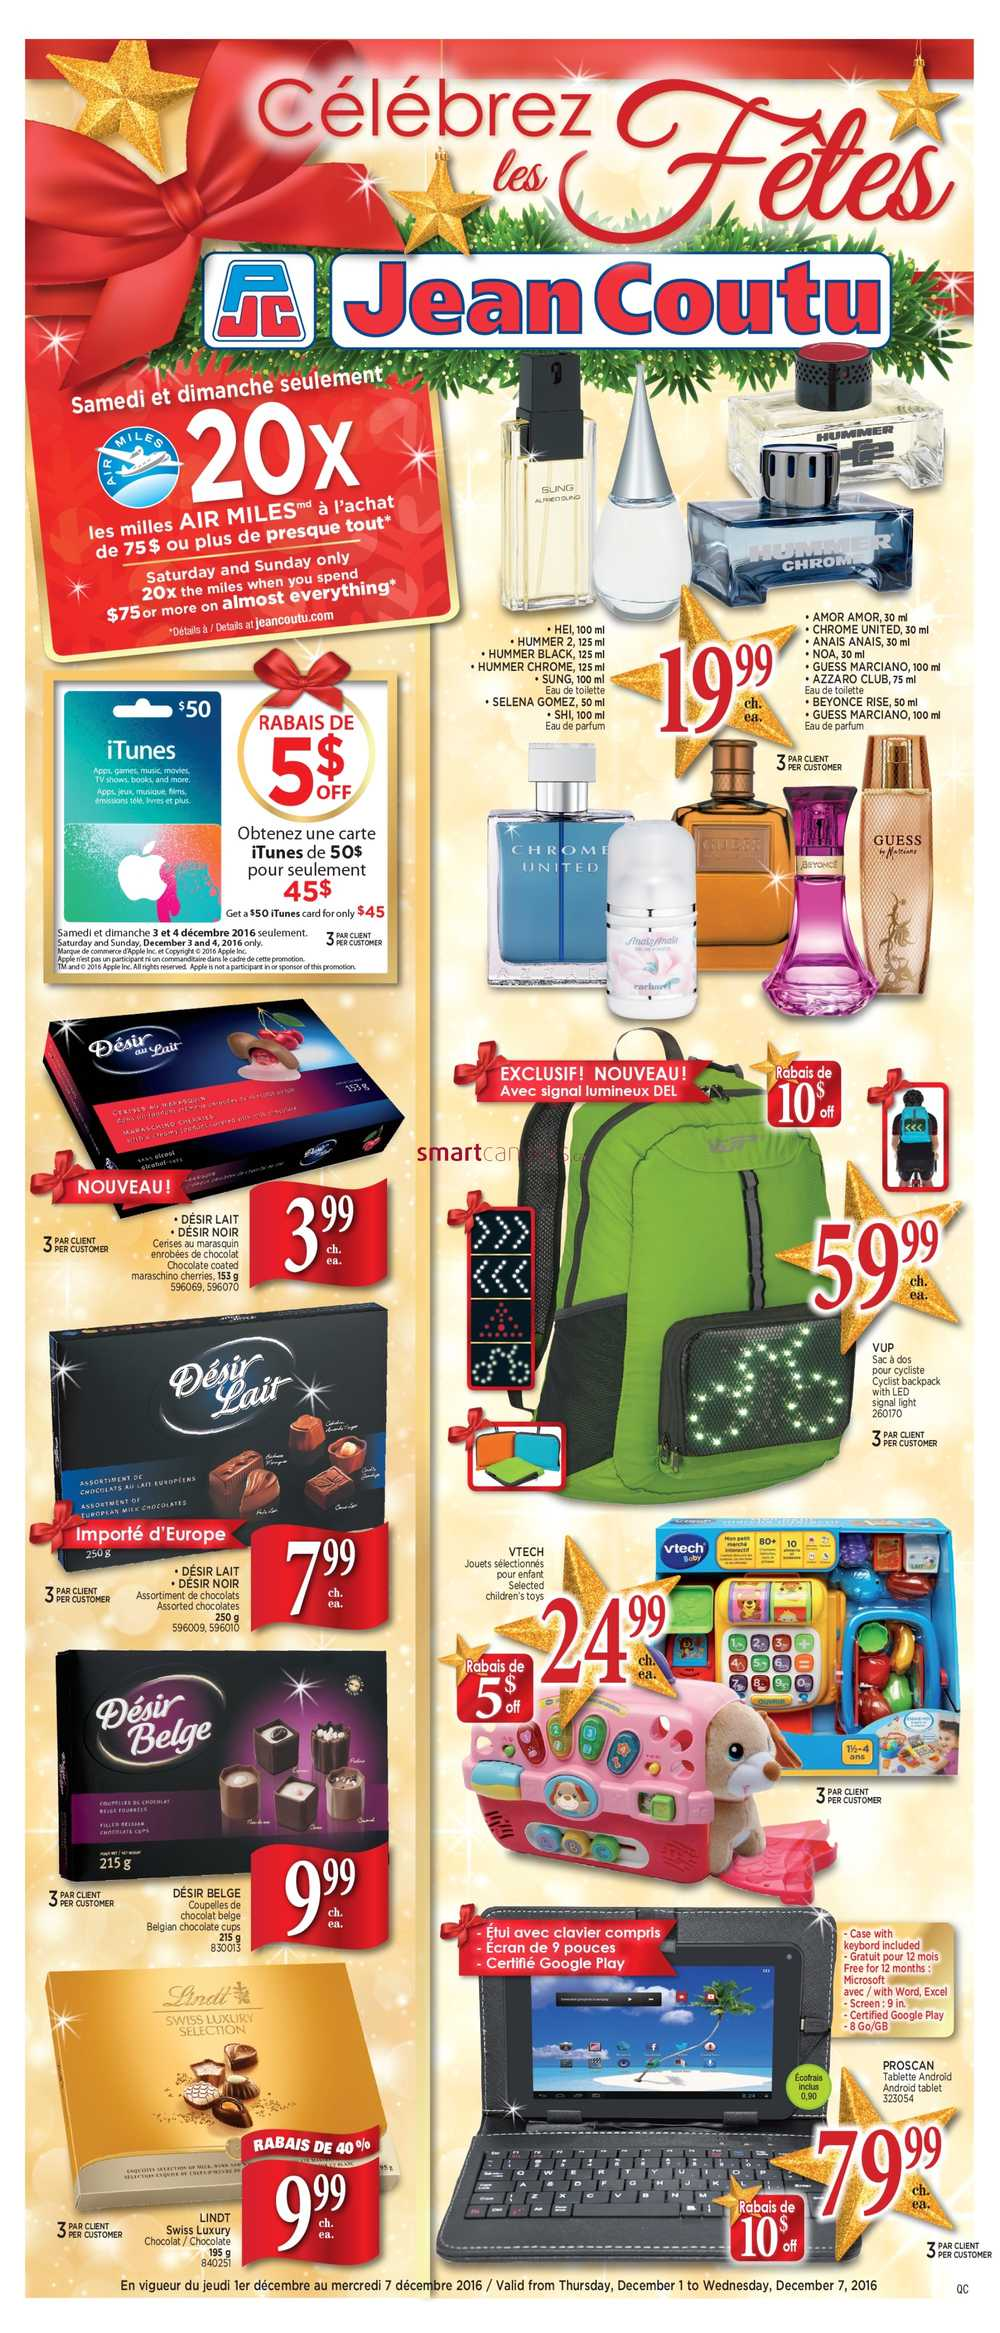 Jean Coutu Qc Flyer December 1 To 7